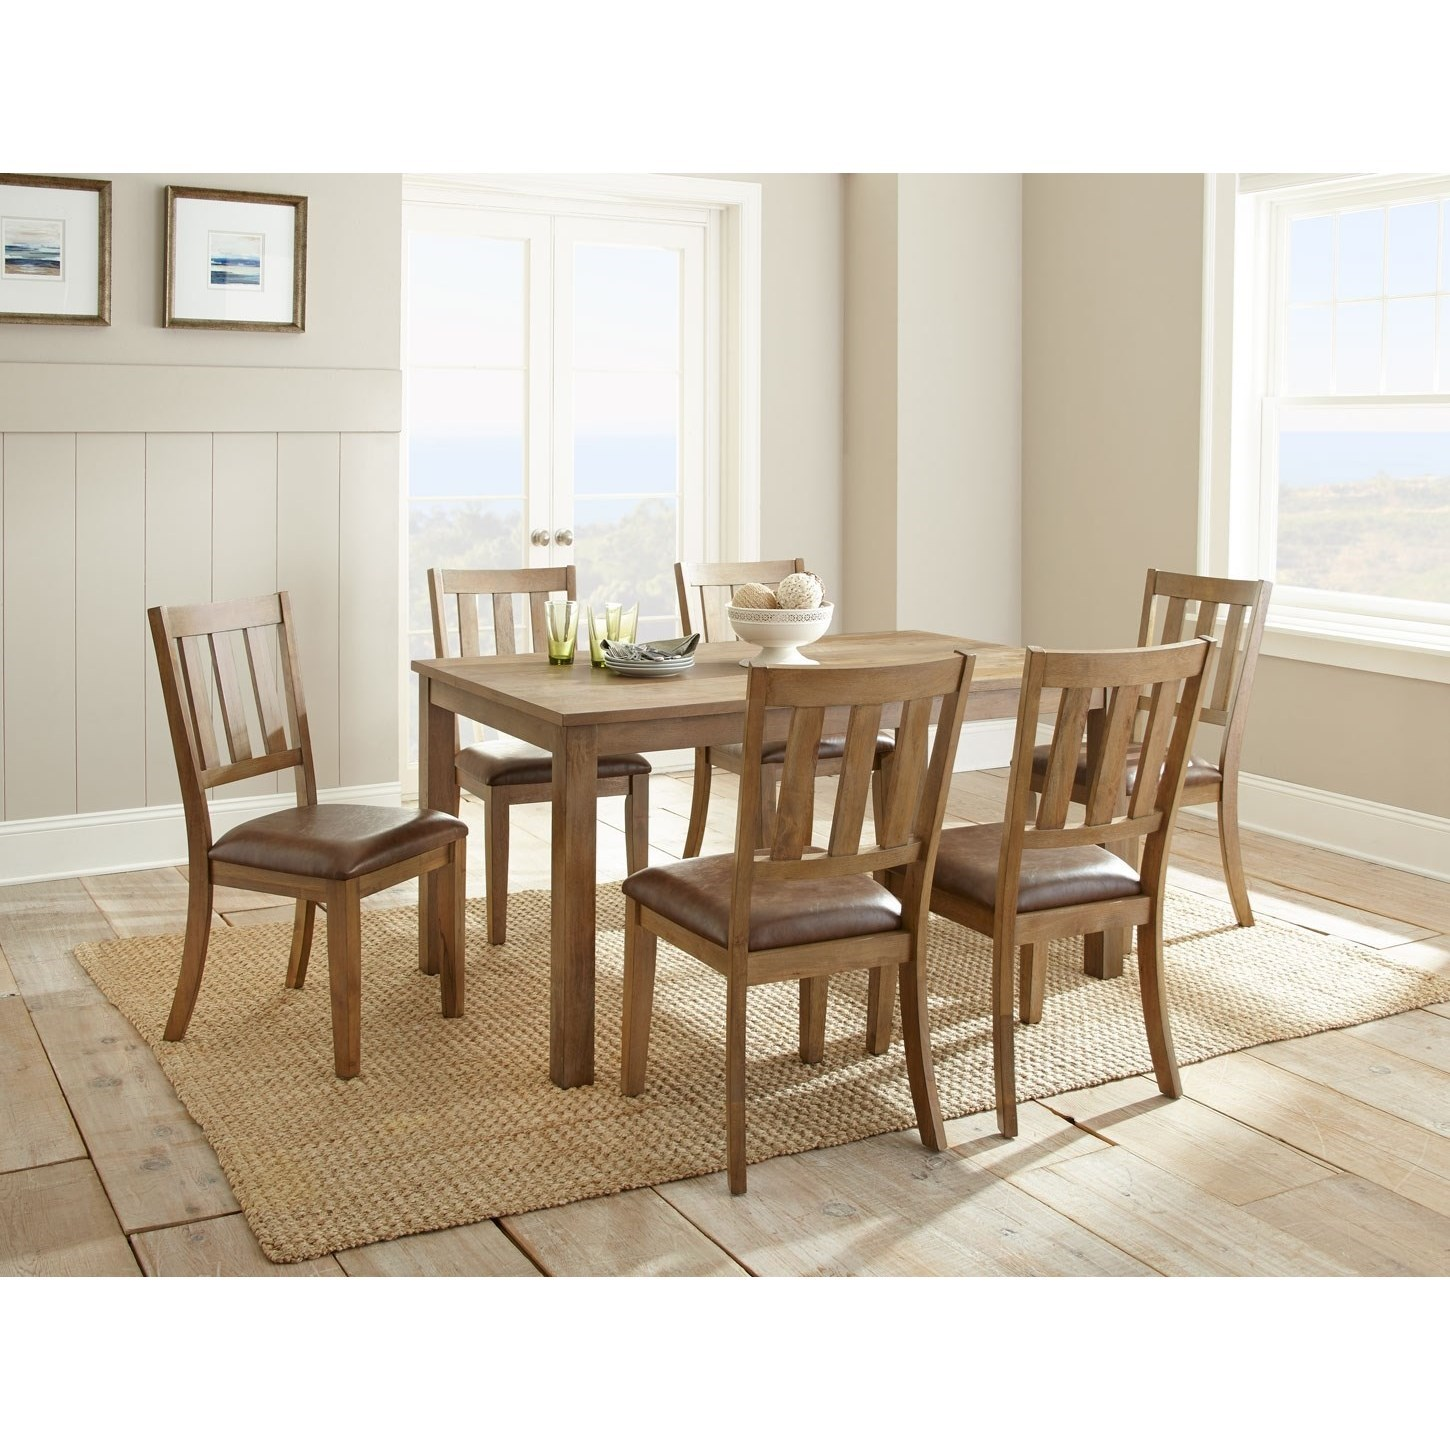 Ander Seven Piece Dining Set by Steve Silver at Van Hill Furniture